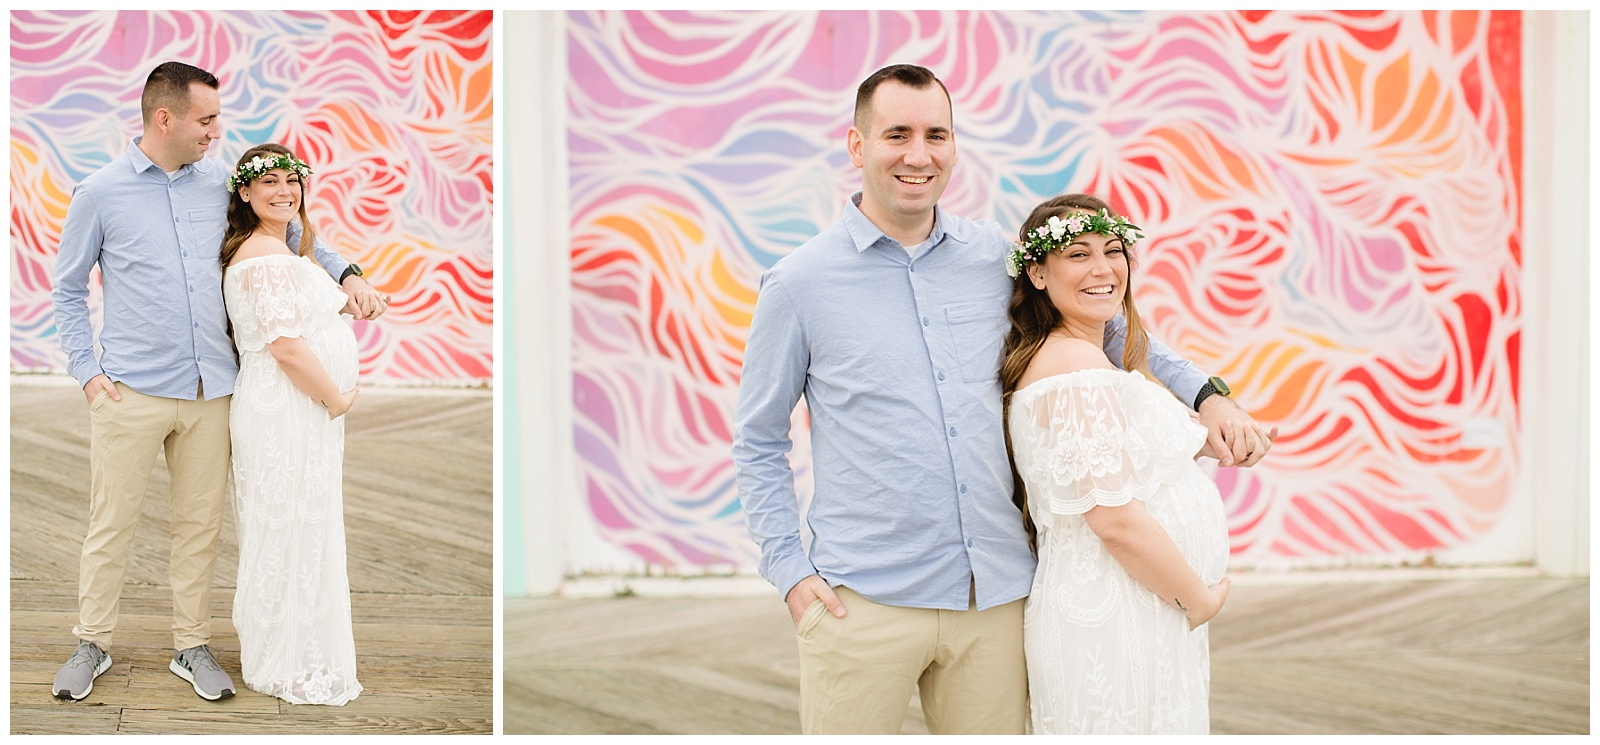 asbury park maternity session sunset maternity sesssion mom to be beach maternity session flower crown photo inspo